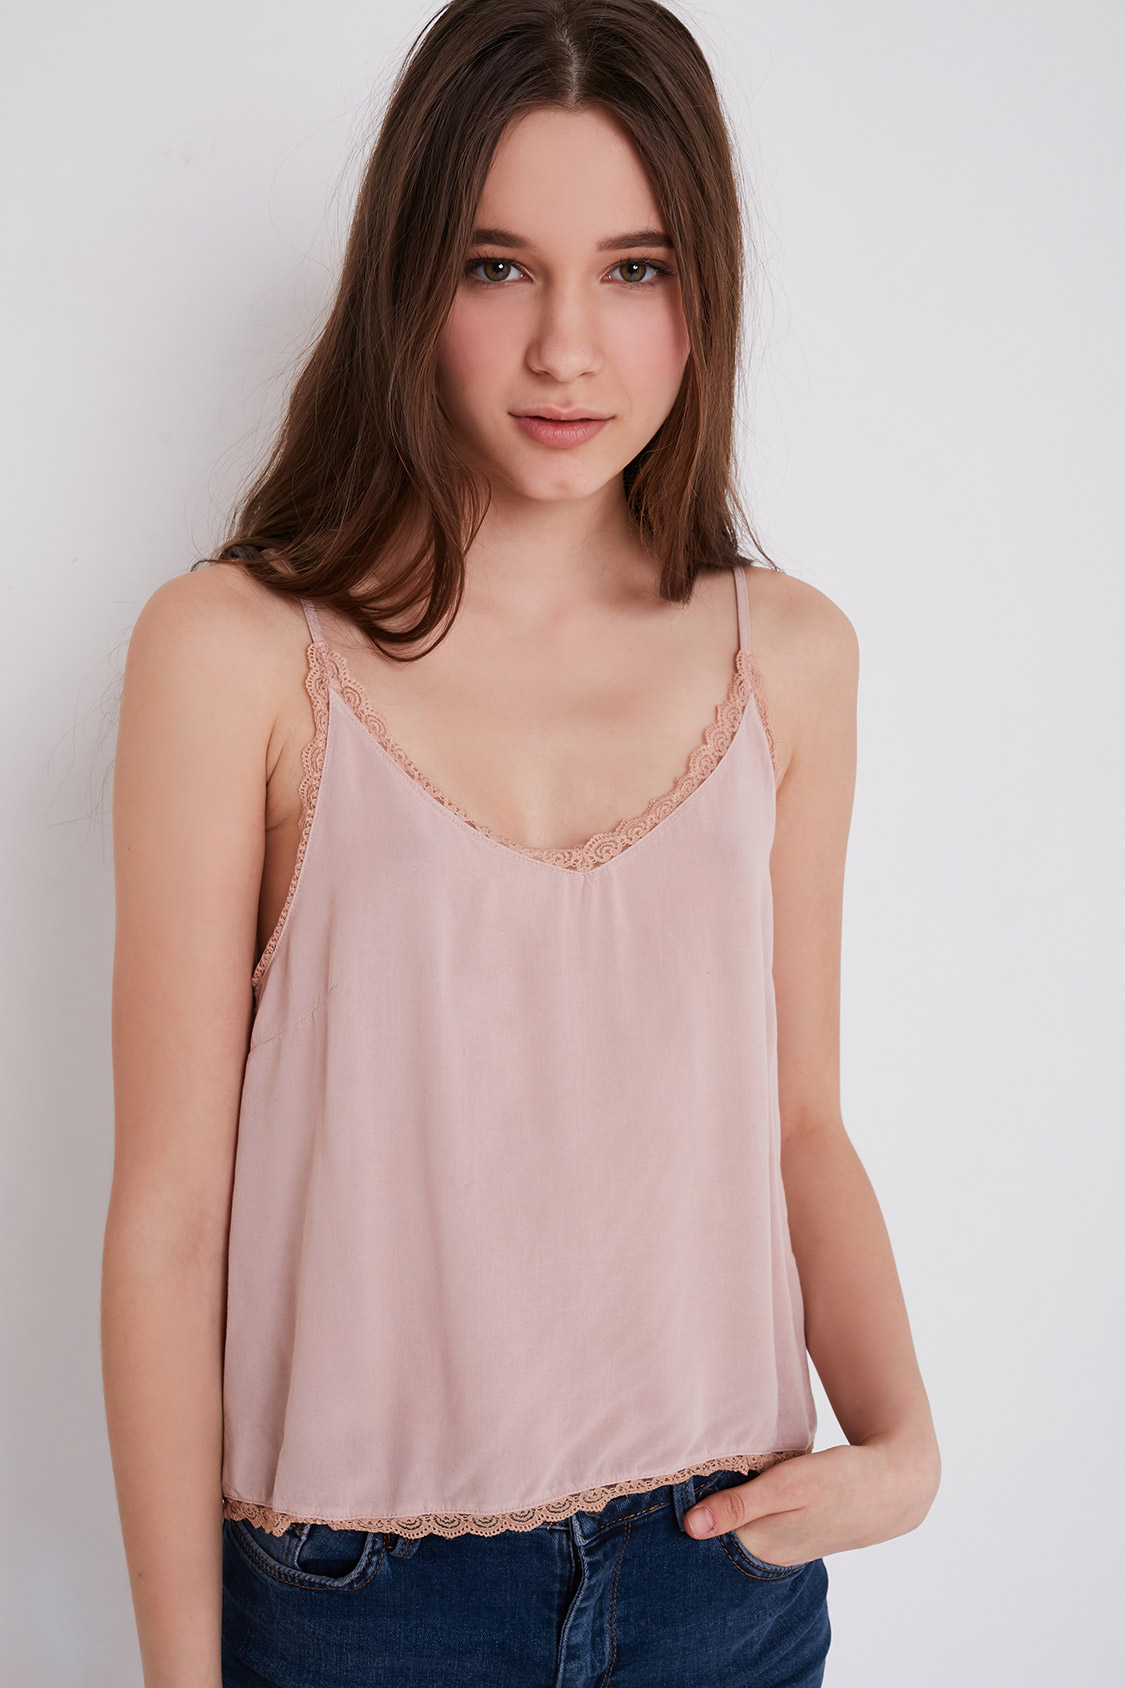 V-neck cami top lace